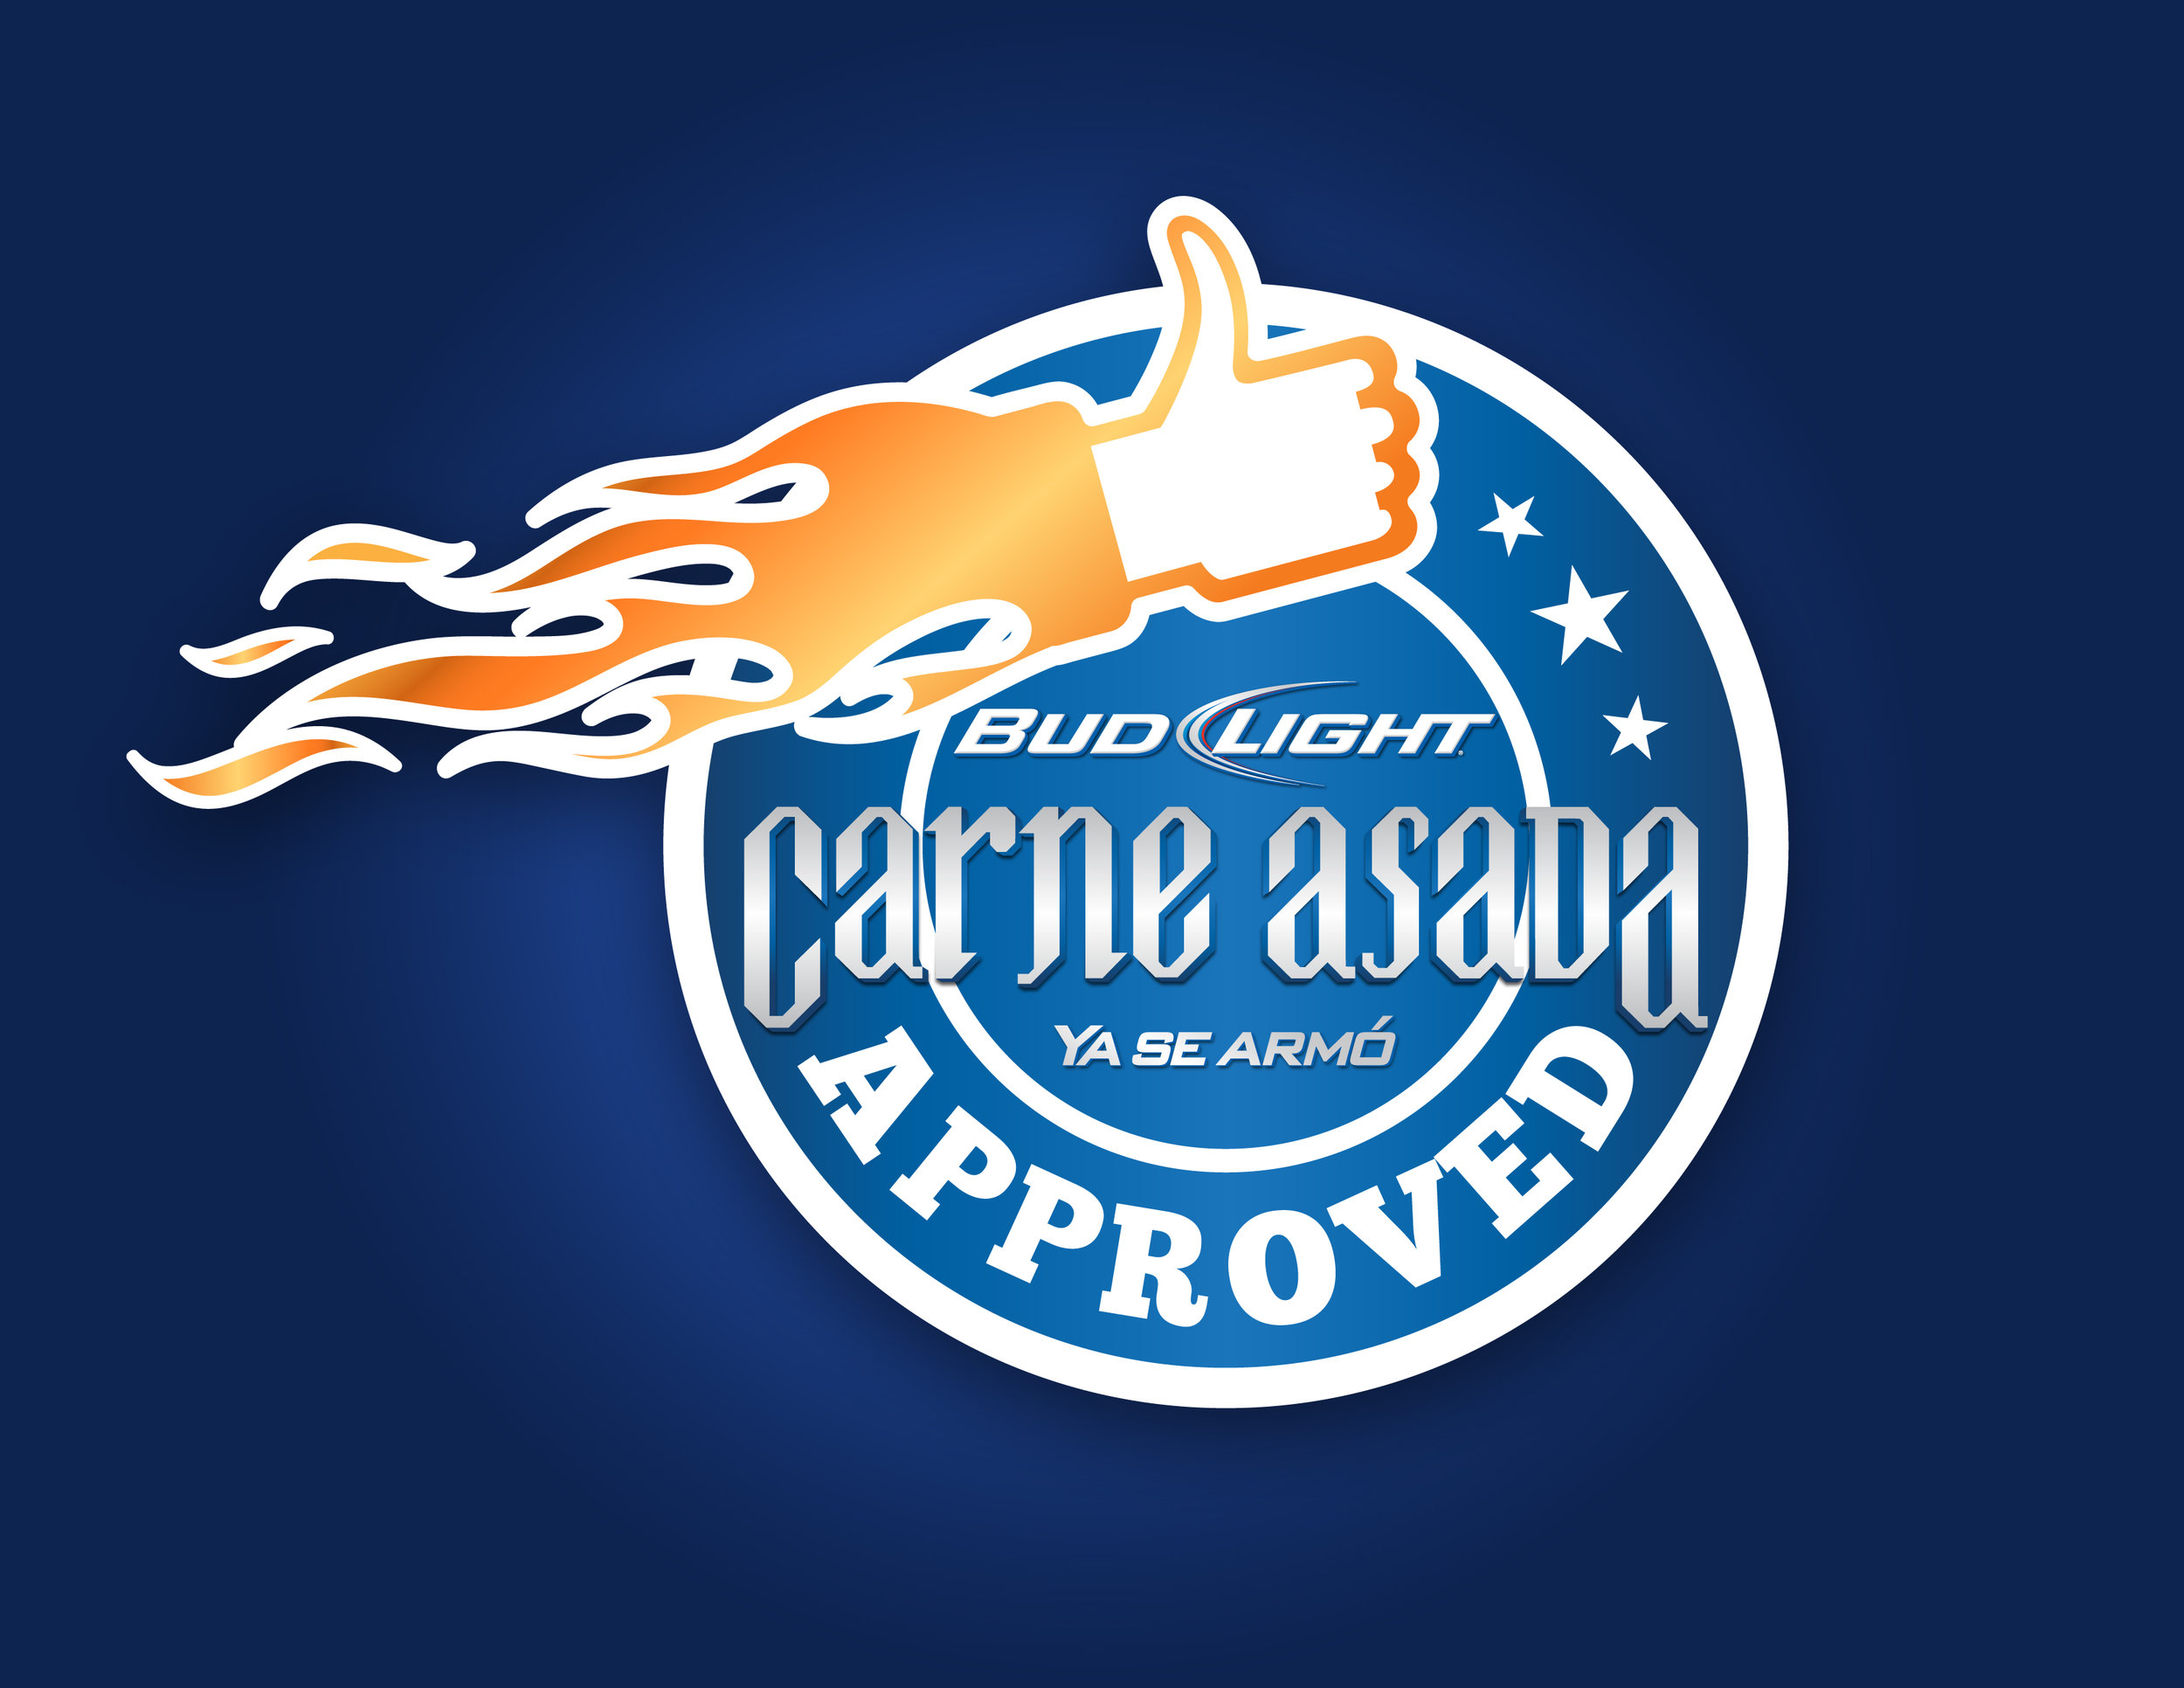 Approval-Sticker-1.jpg